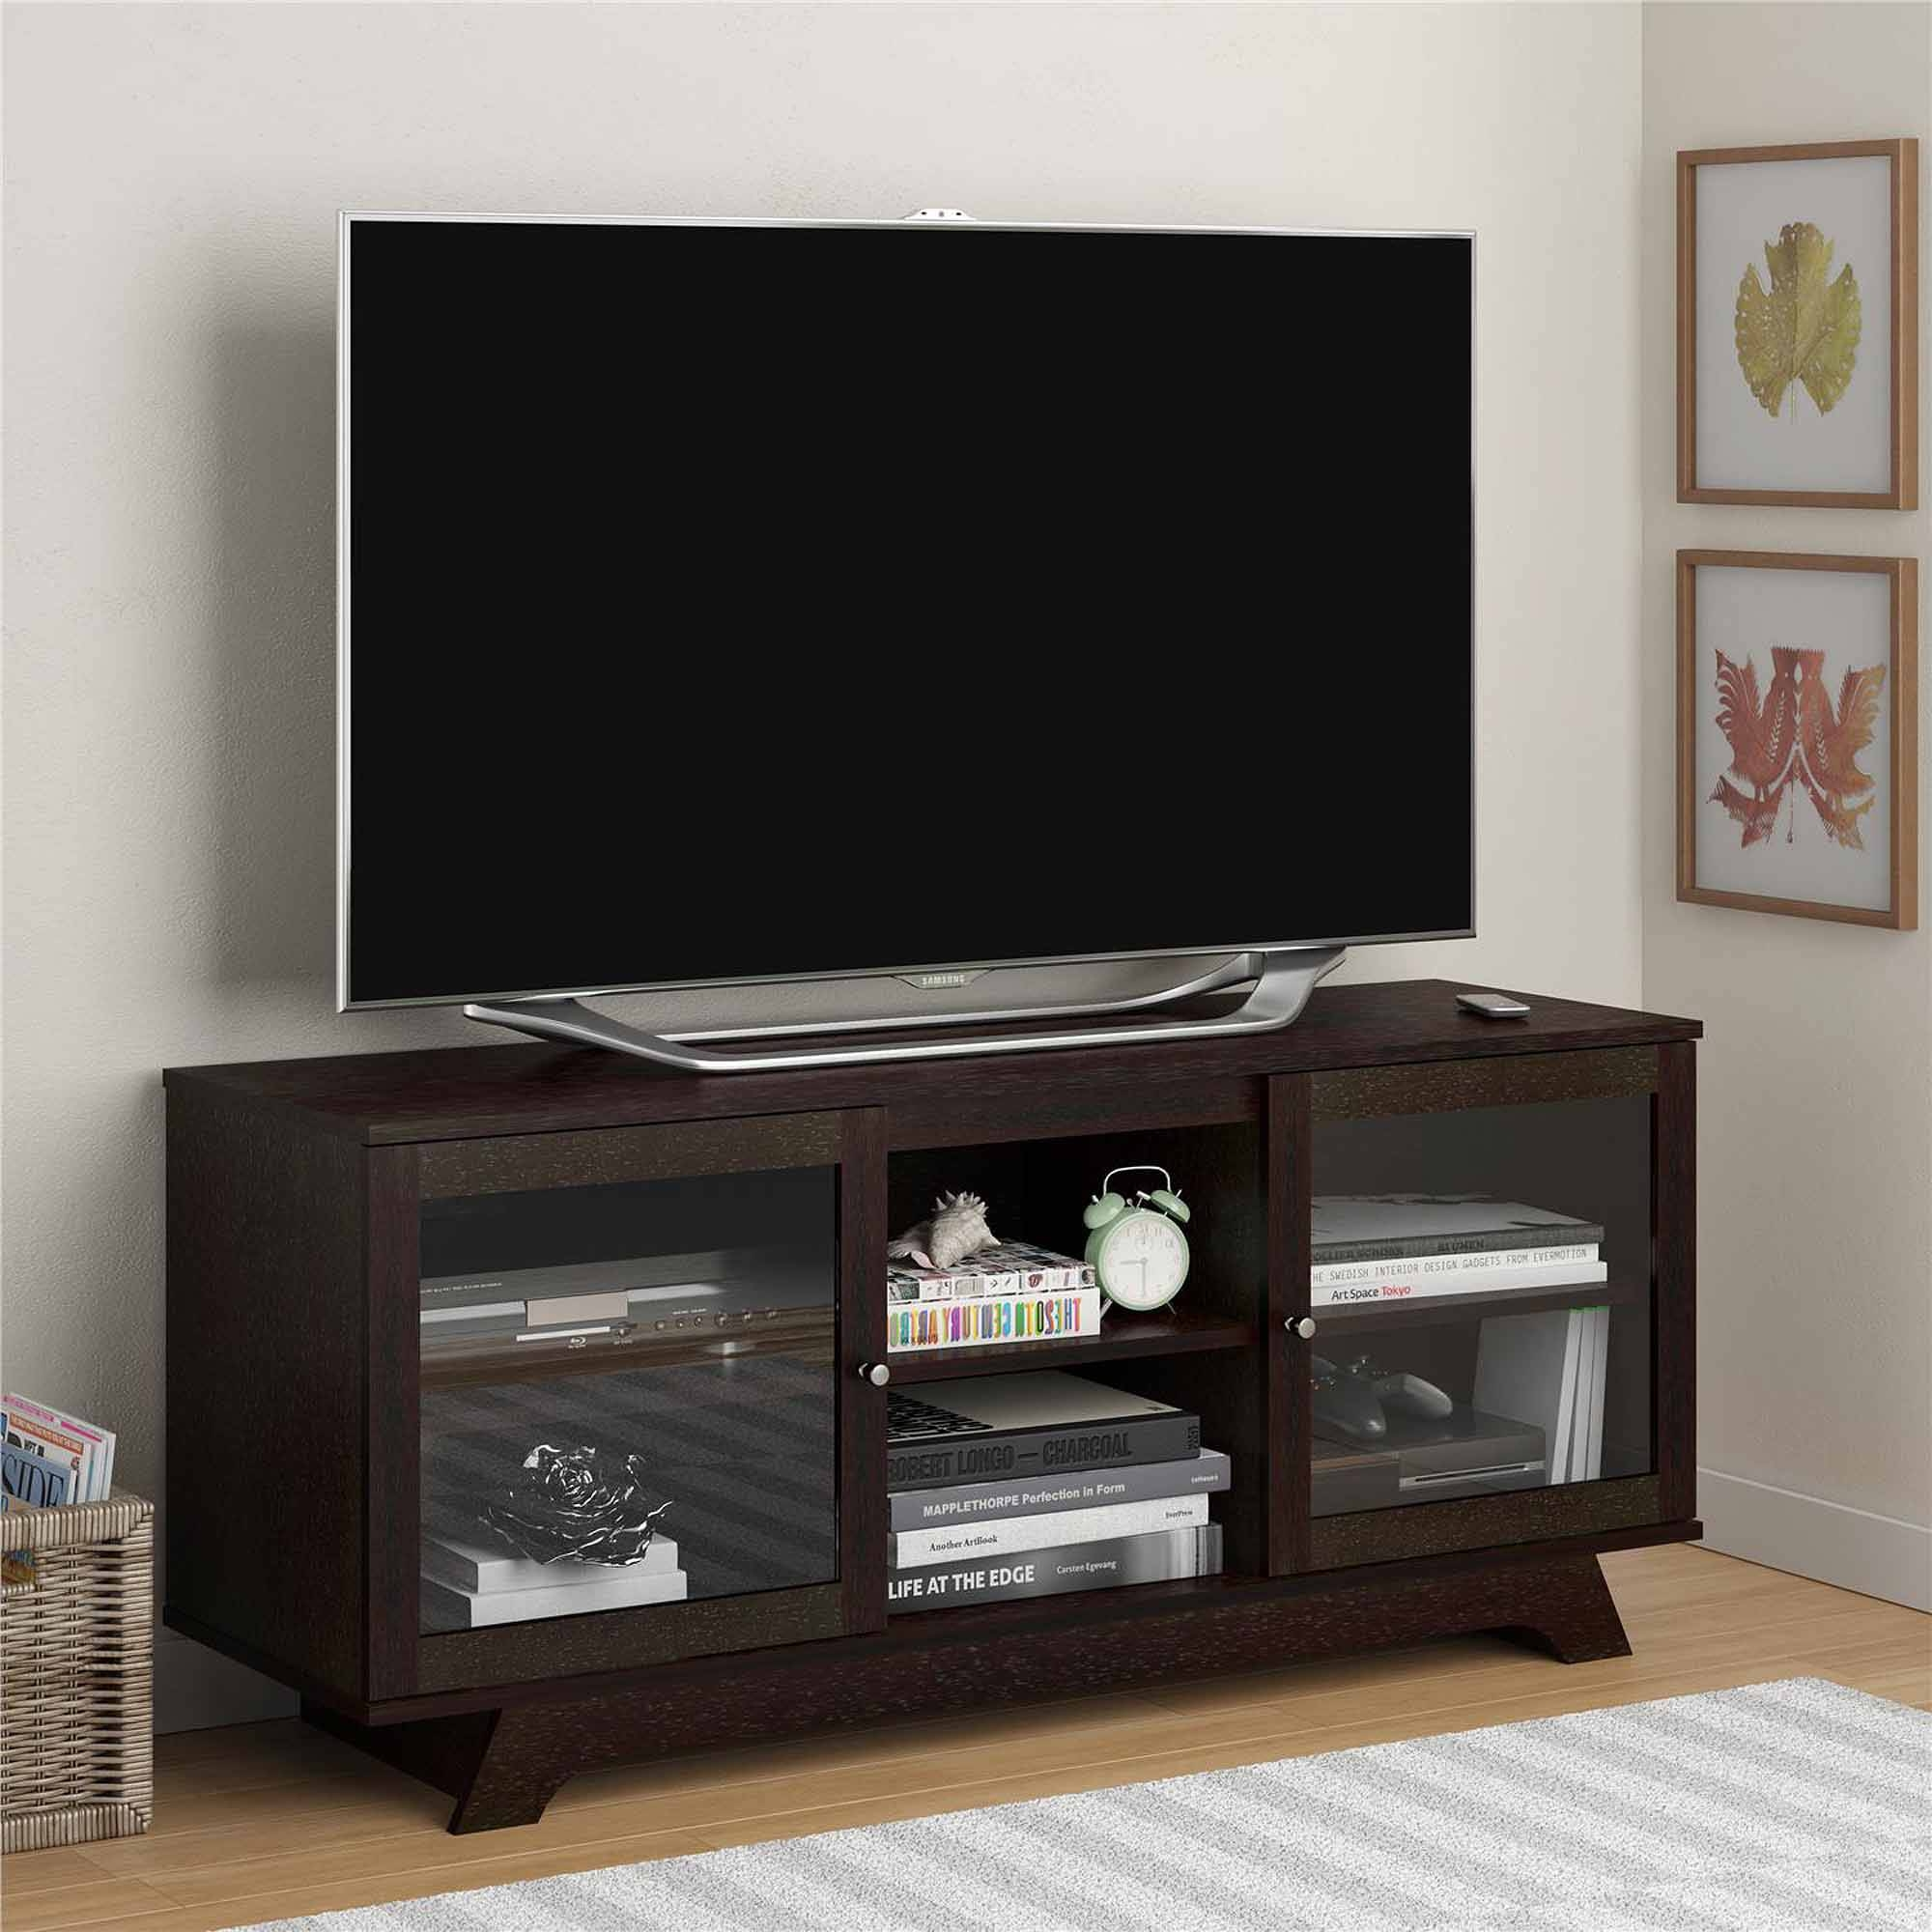 Tv Stands & Entertainment Centers - Walmart pertaining to Modern Tv Stands For Flat Screens (Image 14 of 15)